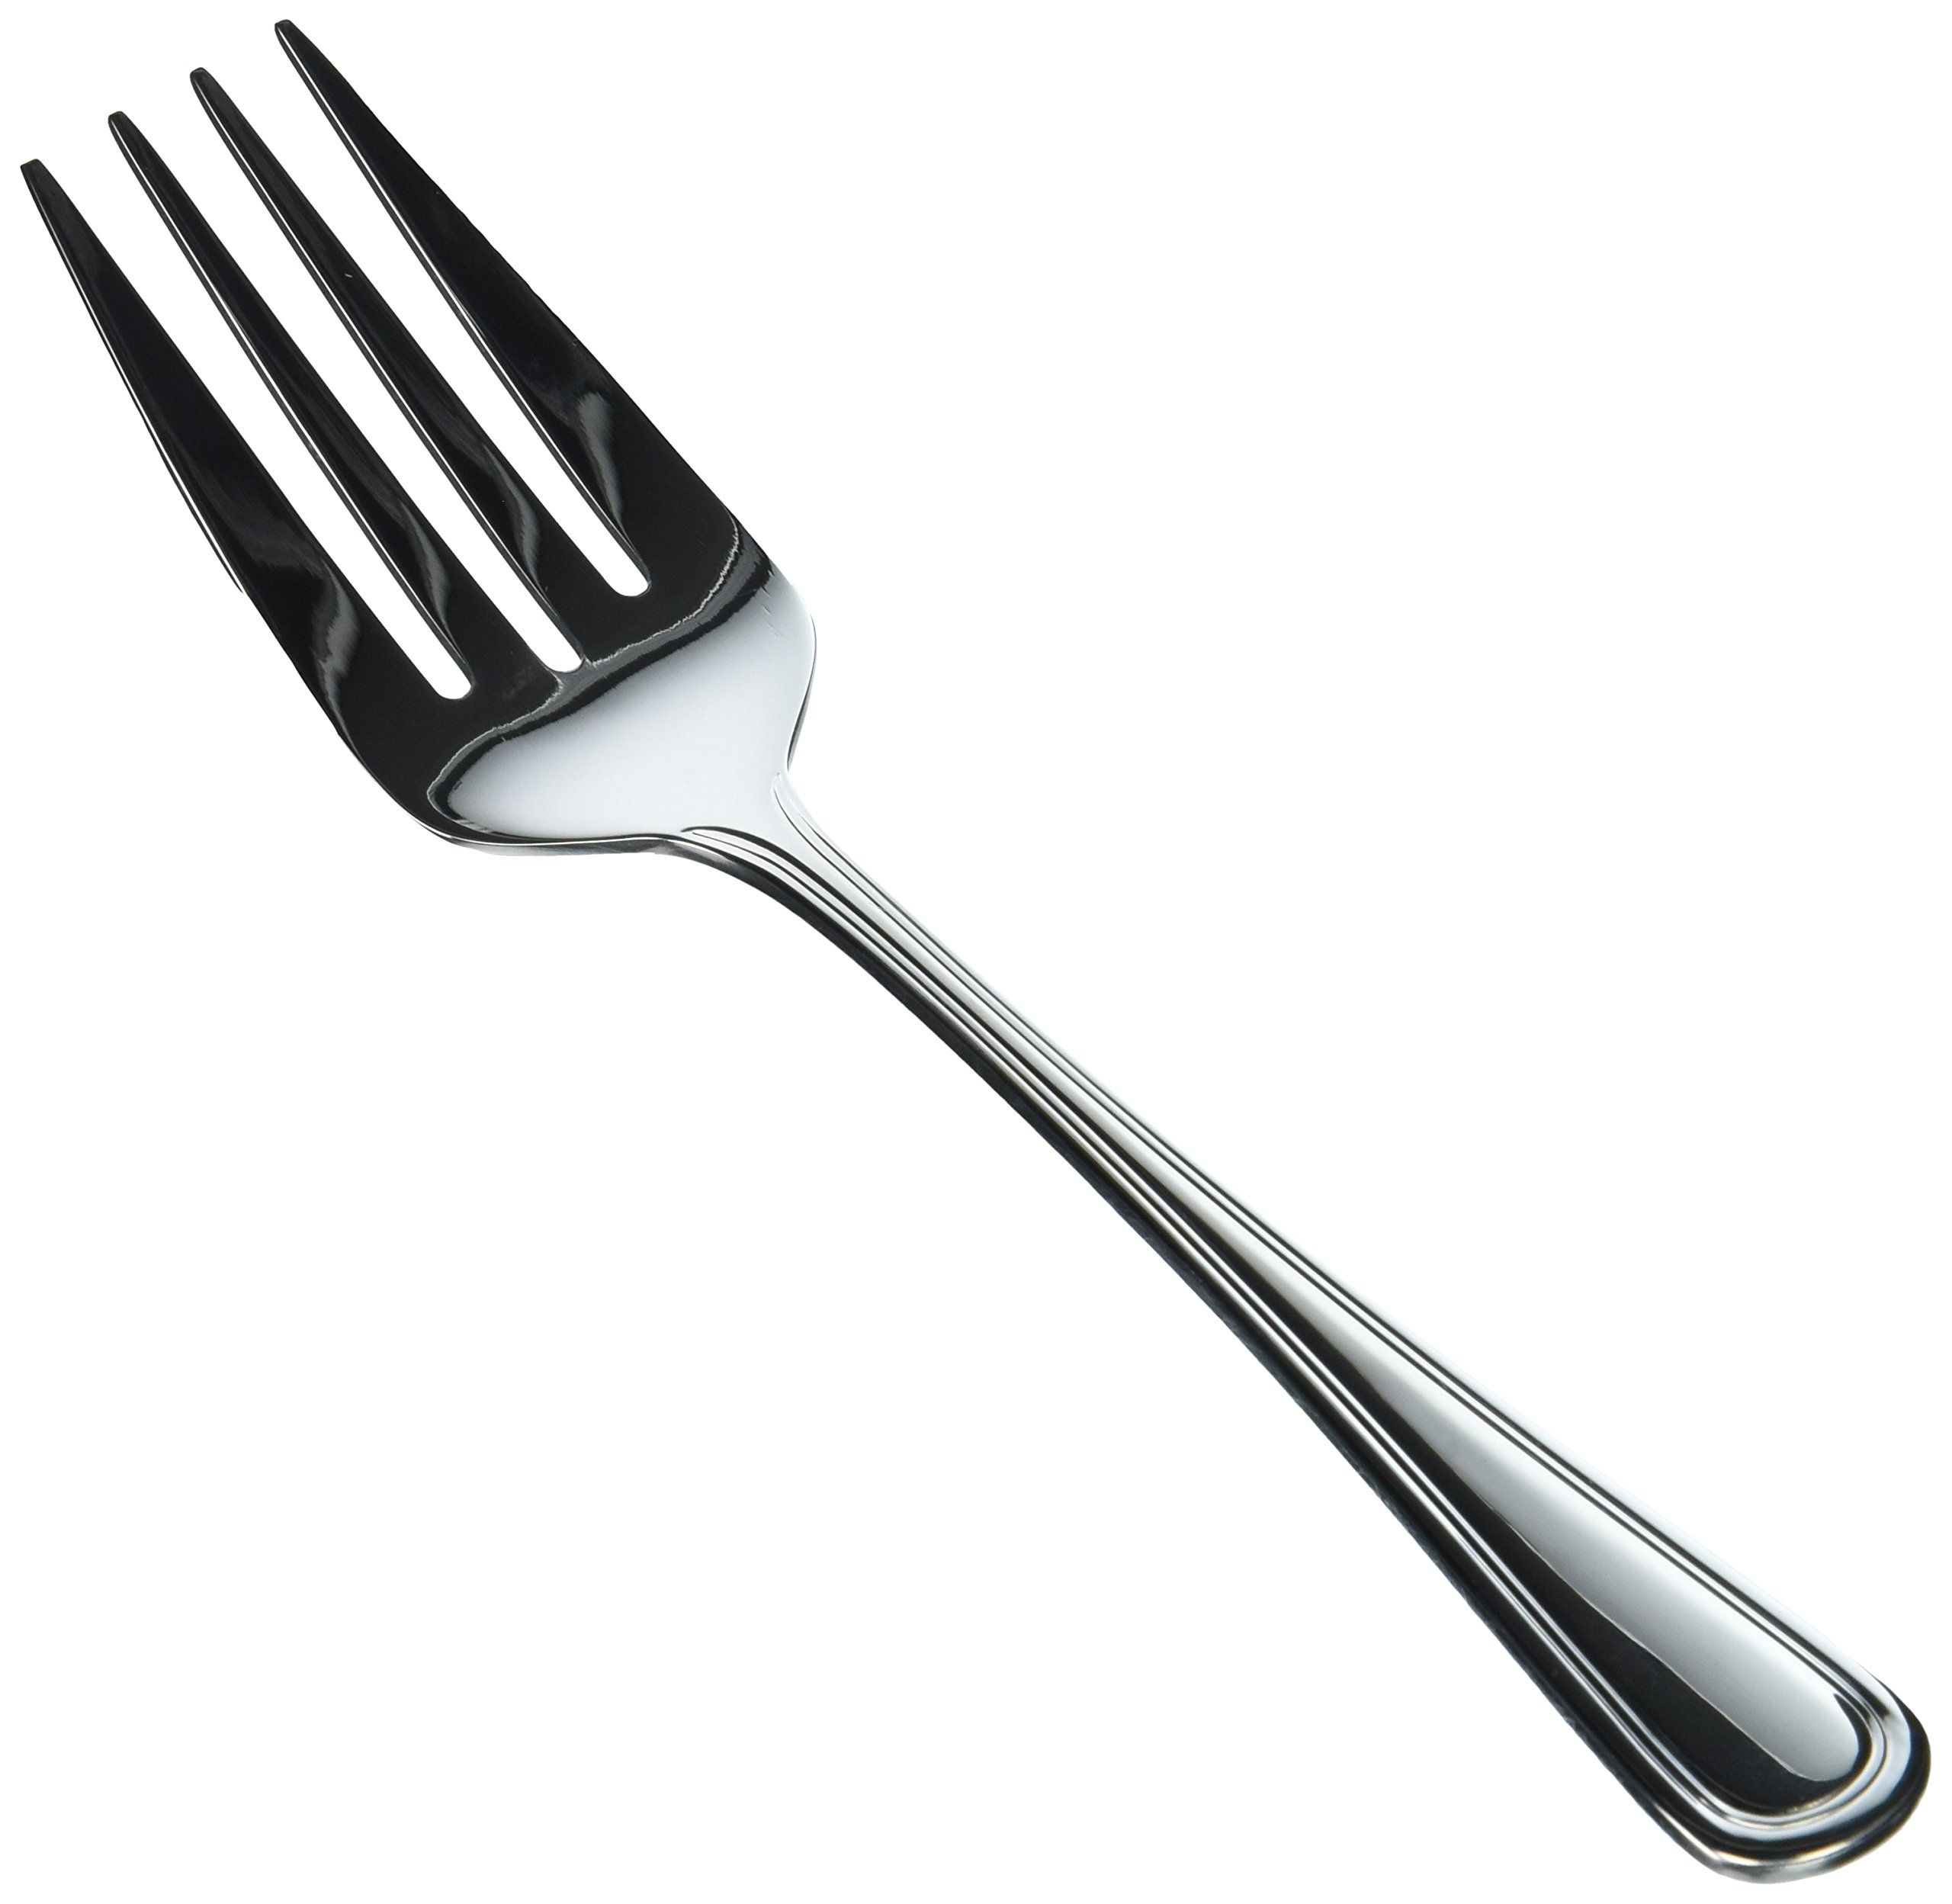 Winco Shangarila 12-Piece Cold Meat Serving Fork Set, Large, 18-8 Stainless Steel by Winco